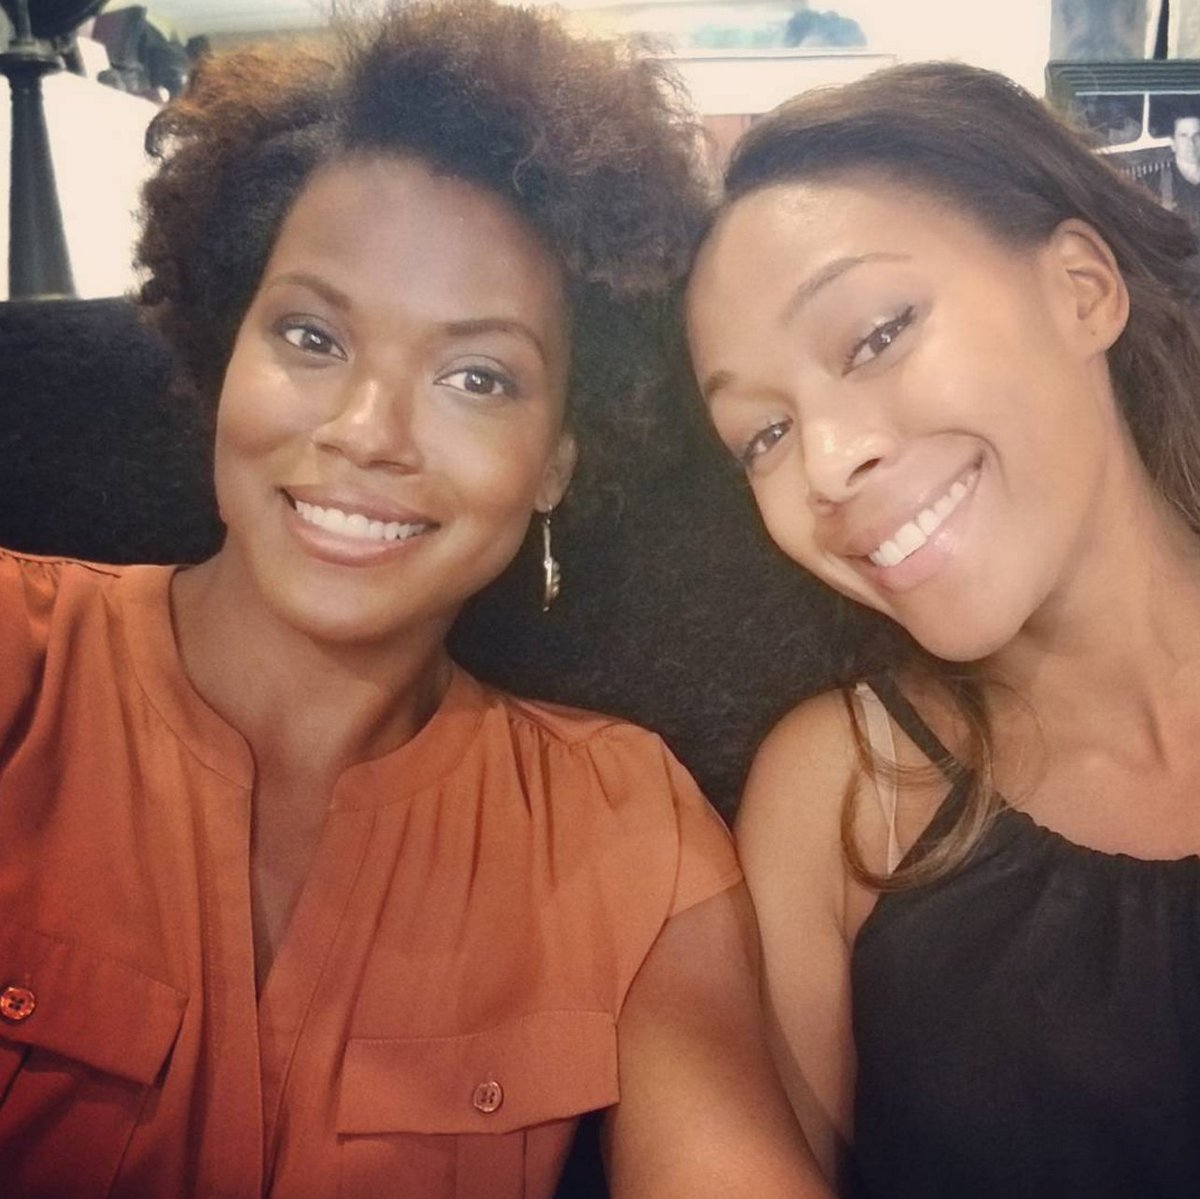 Instagram Nicole Beharie nude photos 2019